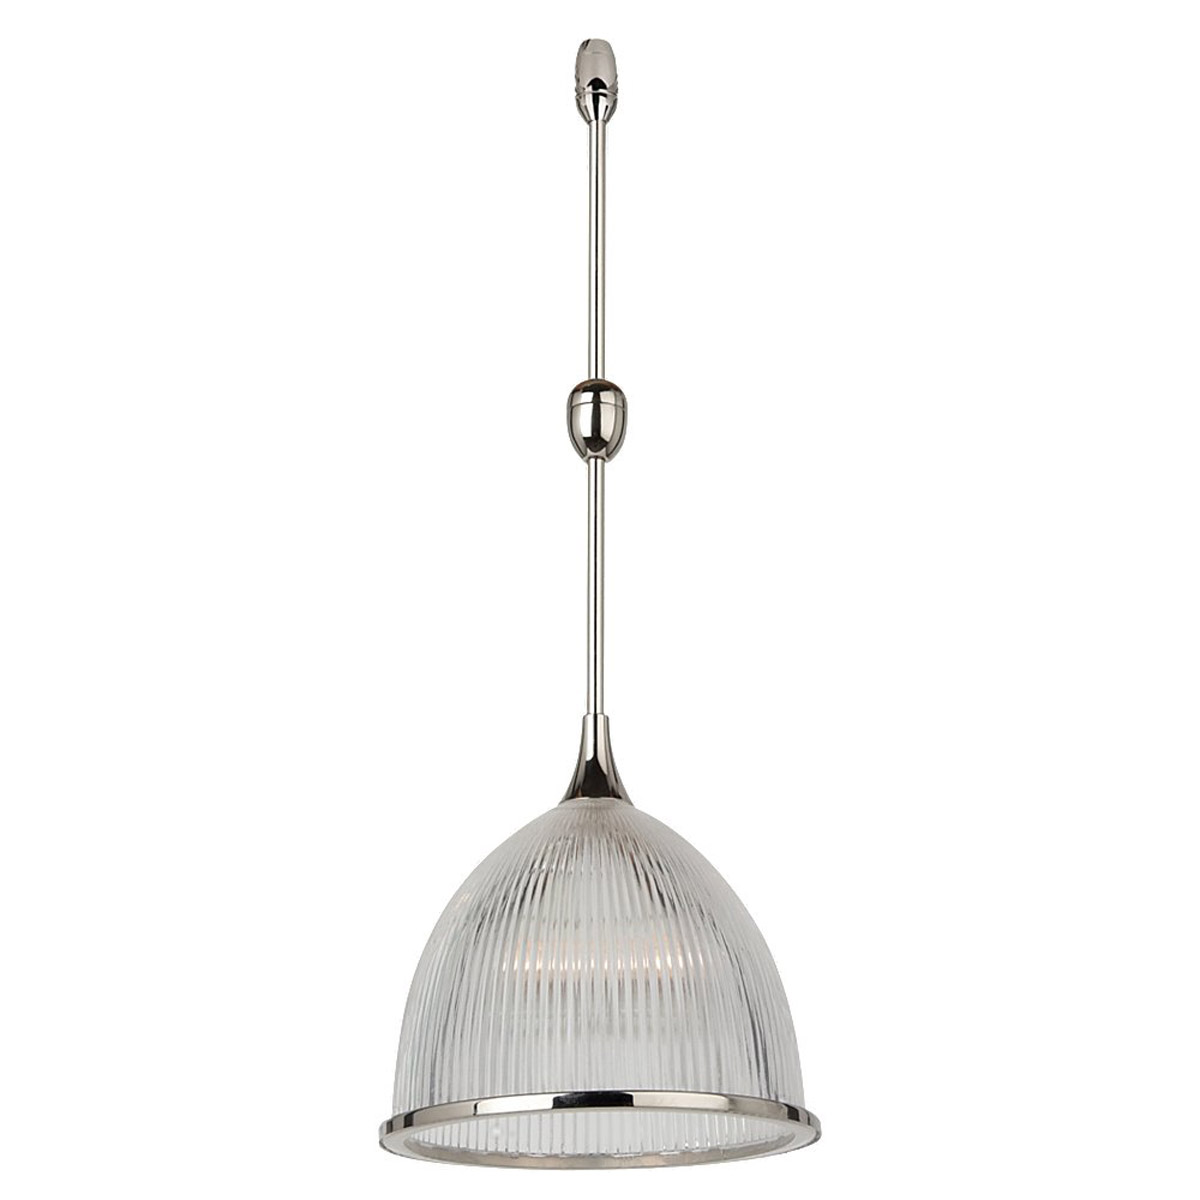 Sea Gull Lighting Ambiance Transitions 1 Light Rail Pendant in Polished Nickel 94687-841 photo